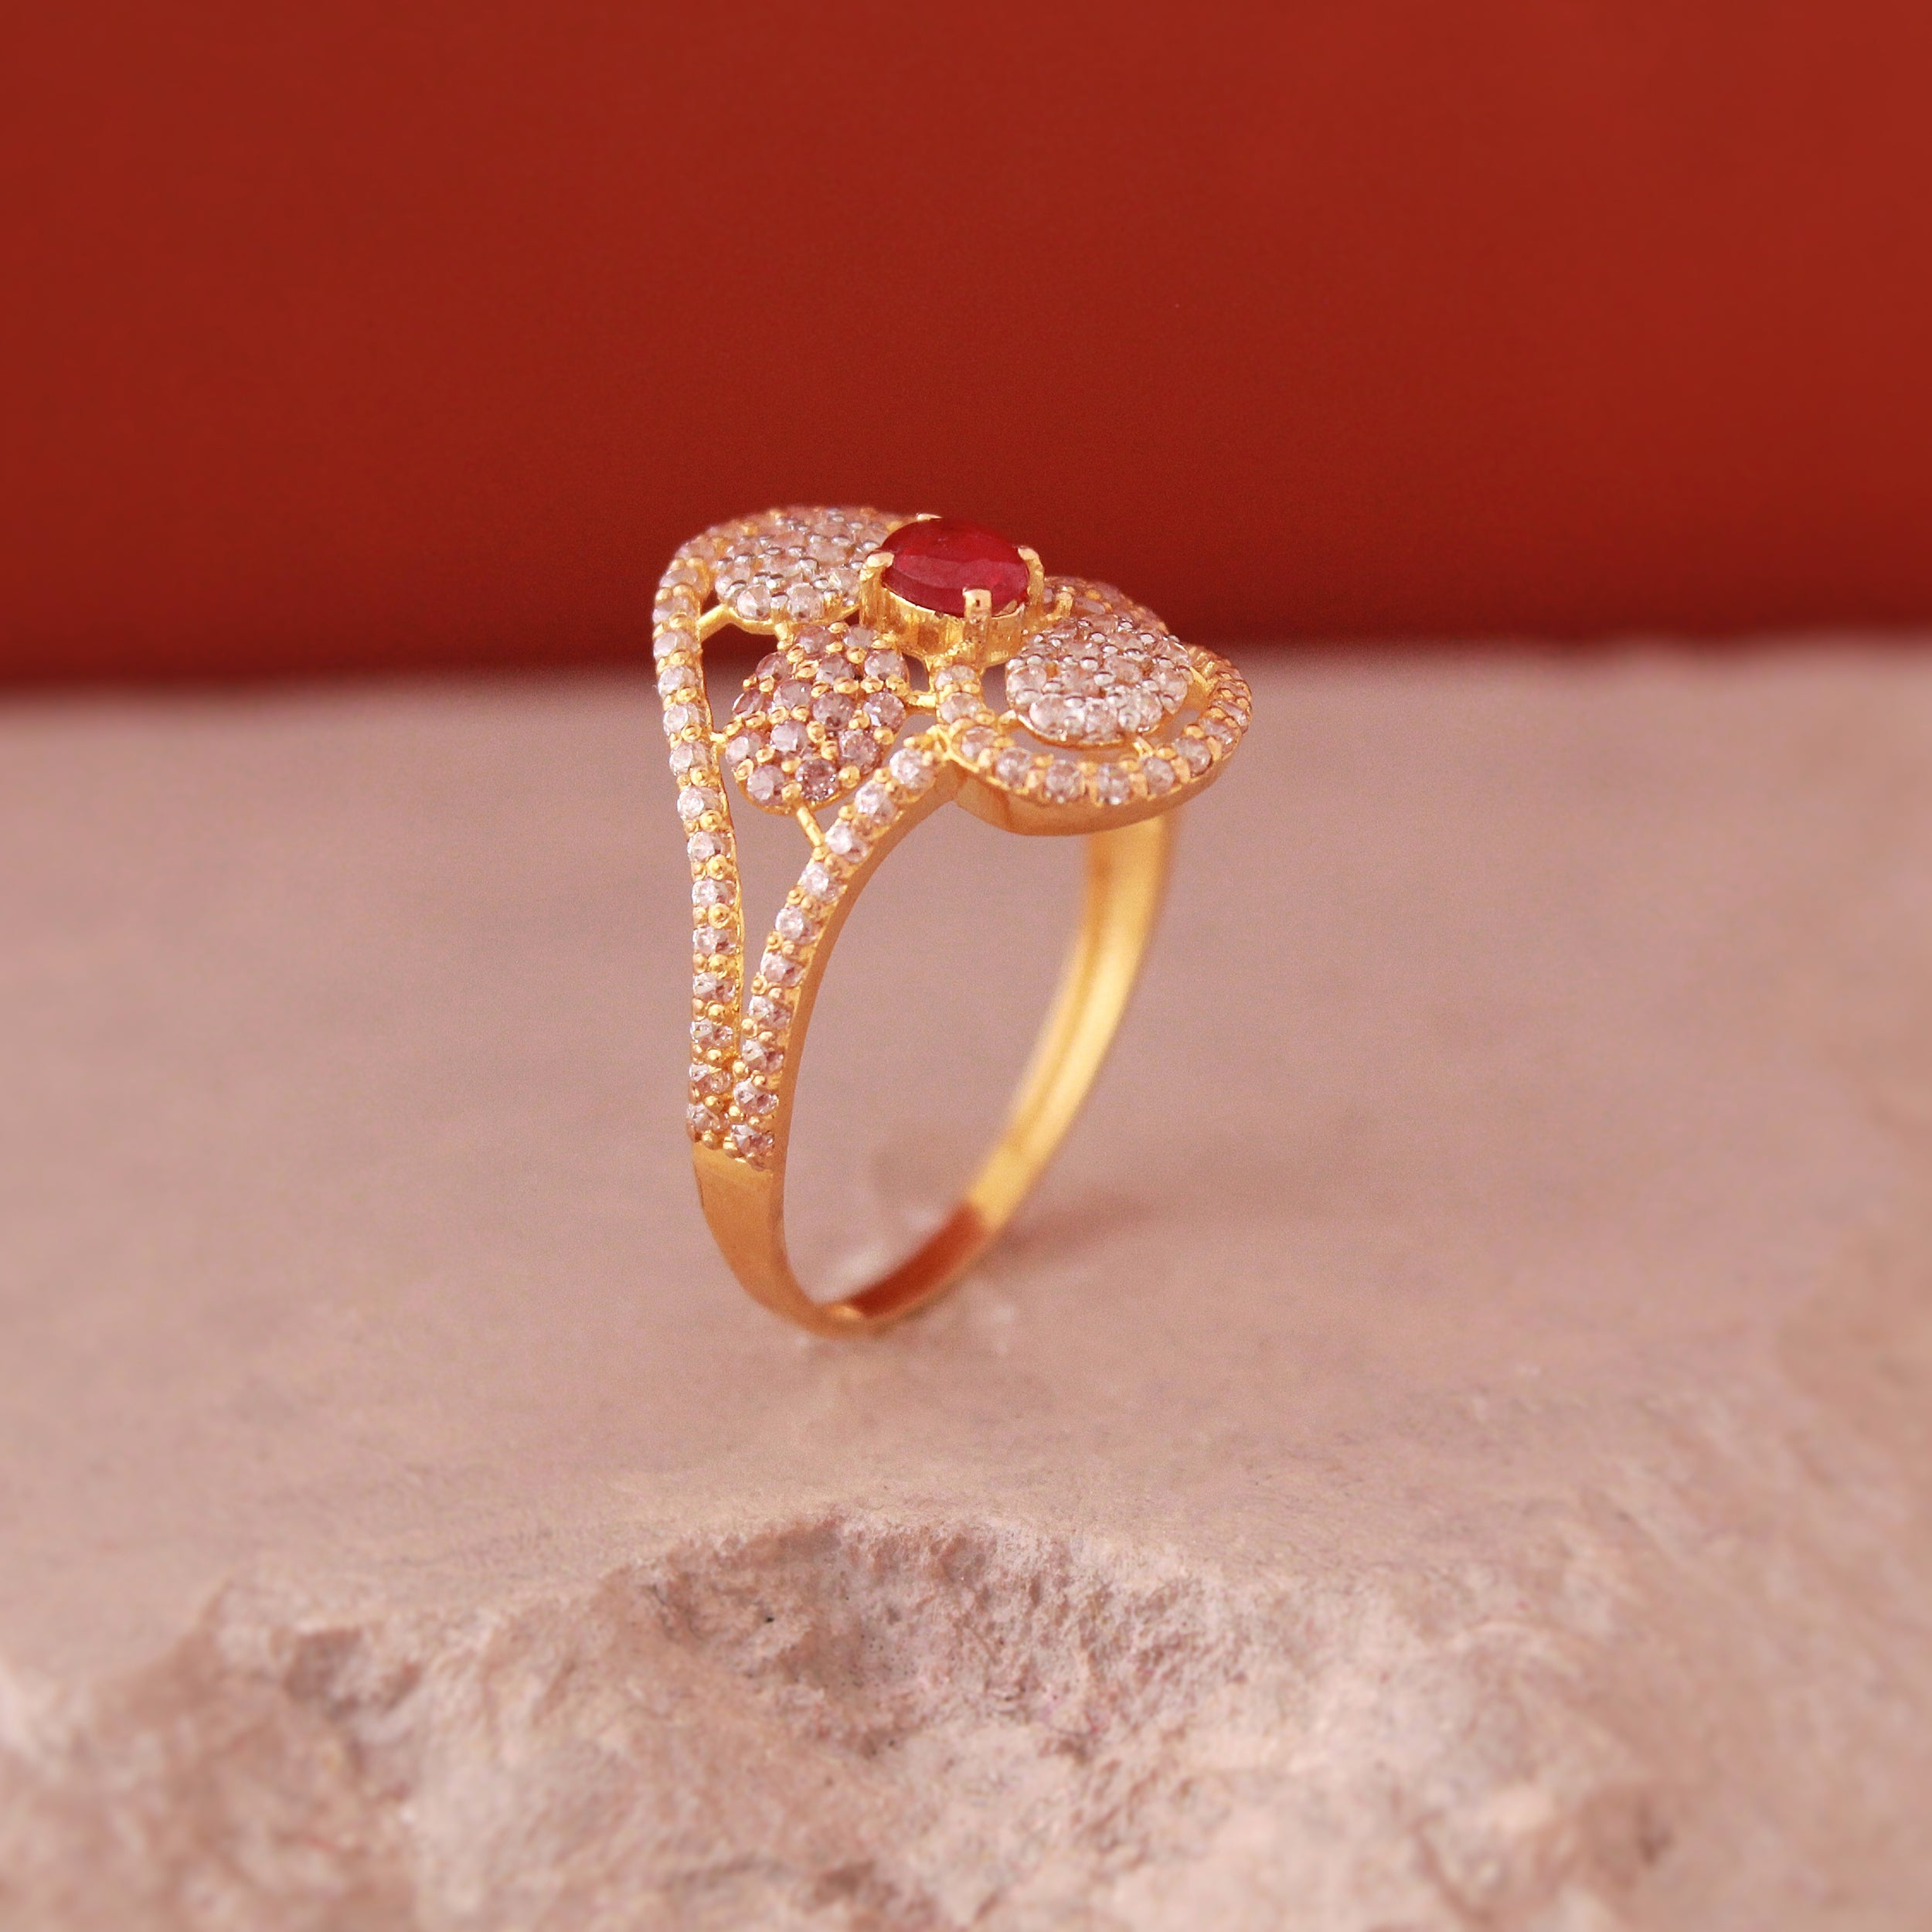 Floral Ring in 21k Gold